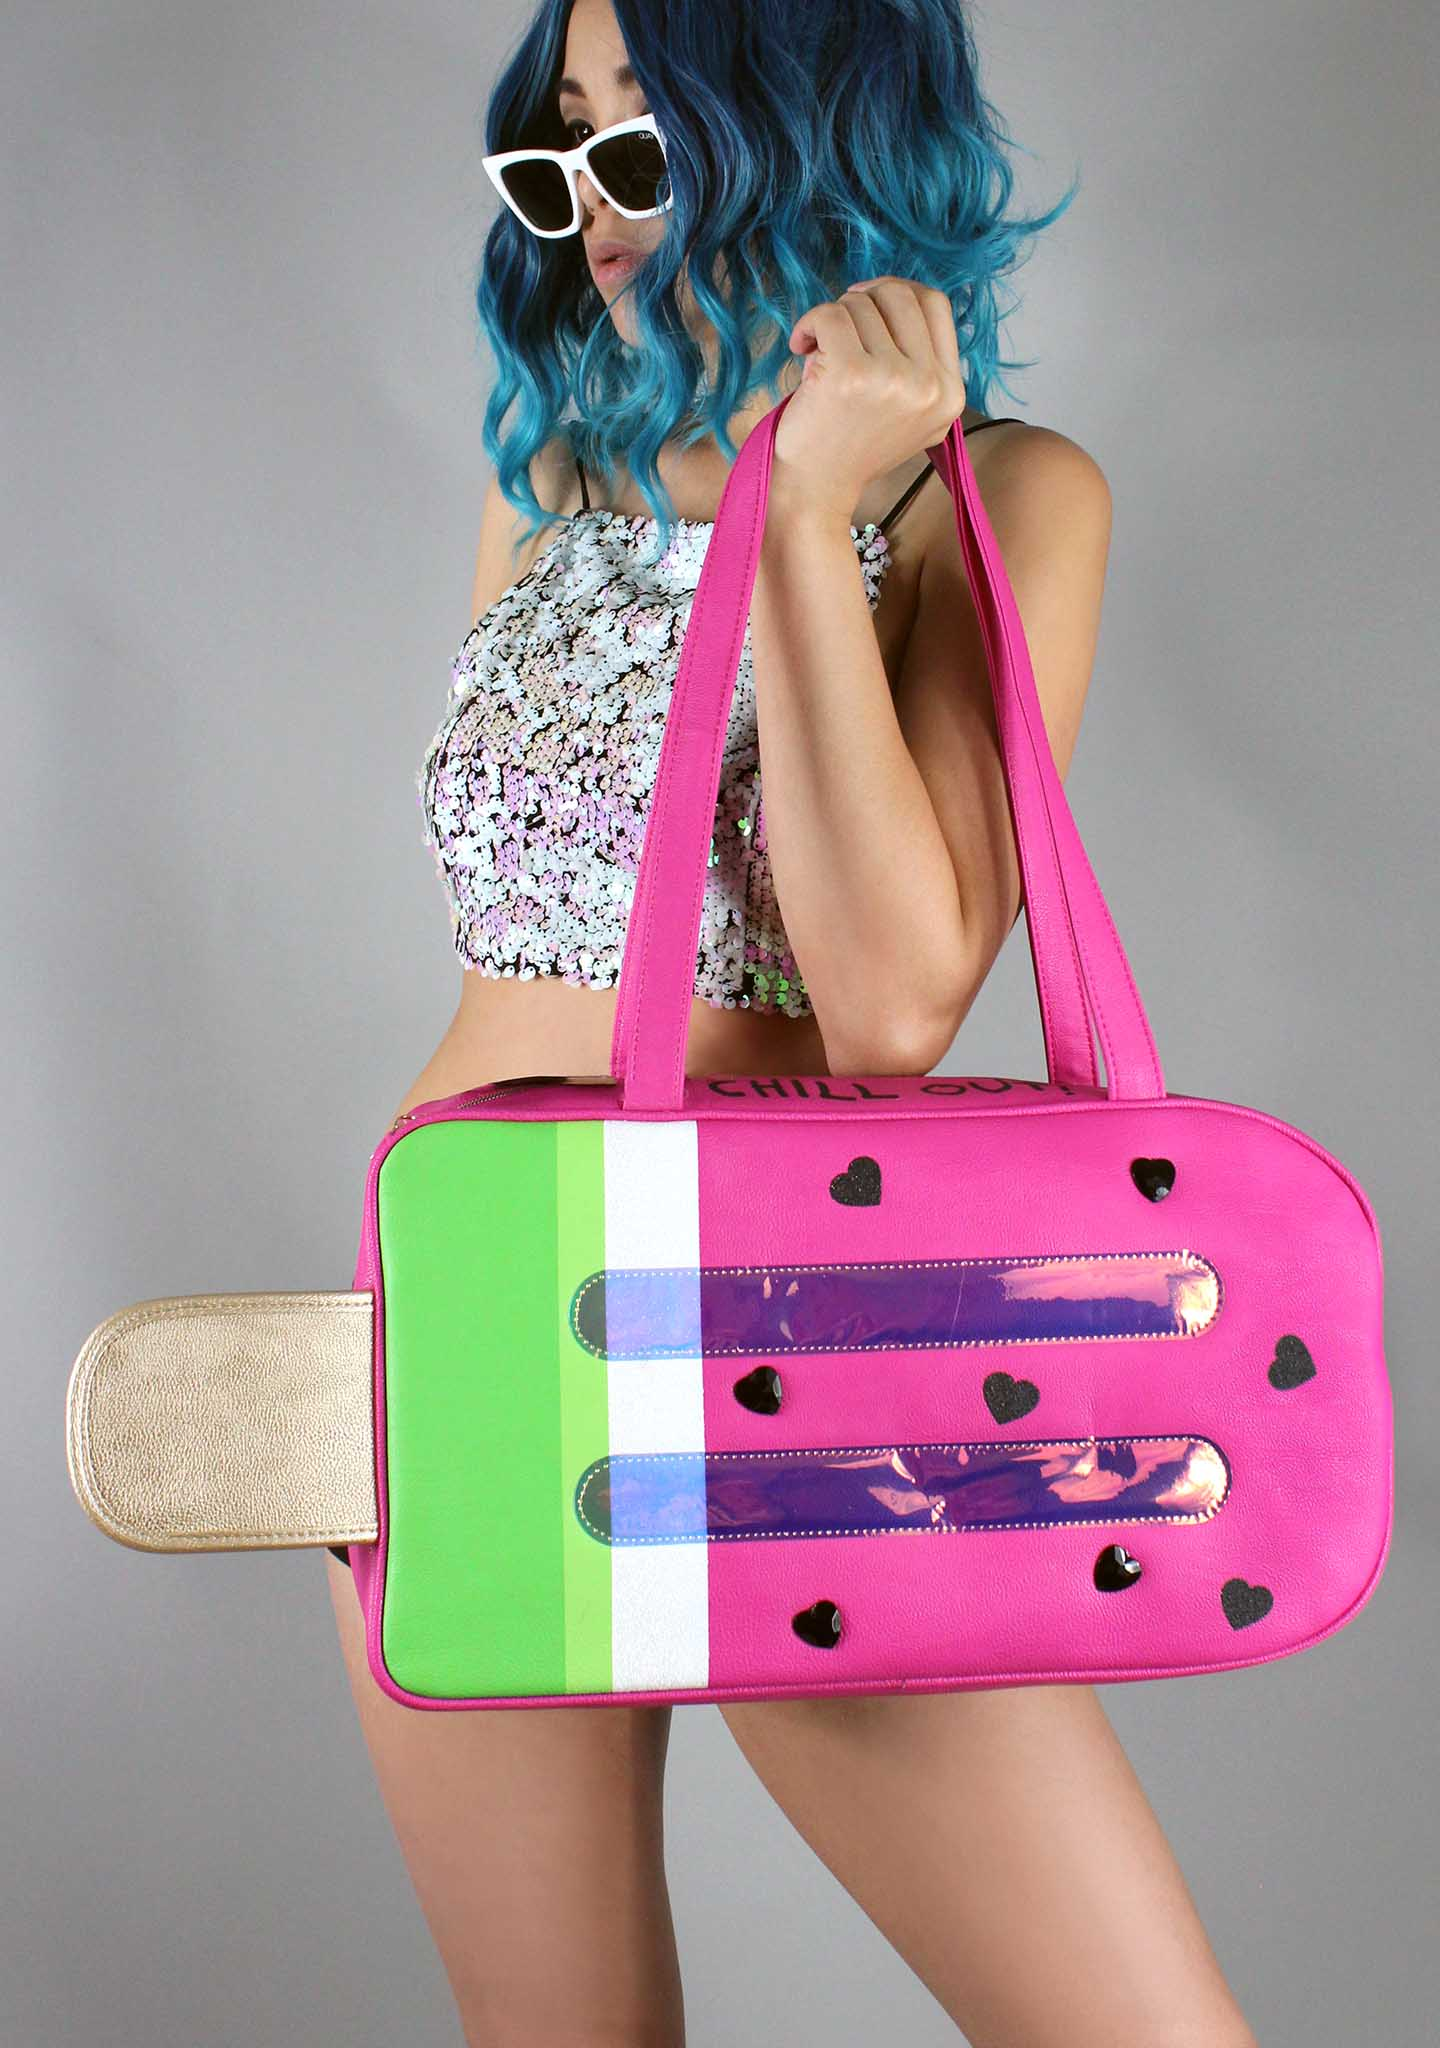 Watermelon Popsicle Cooler Bag